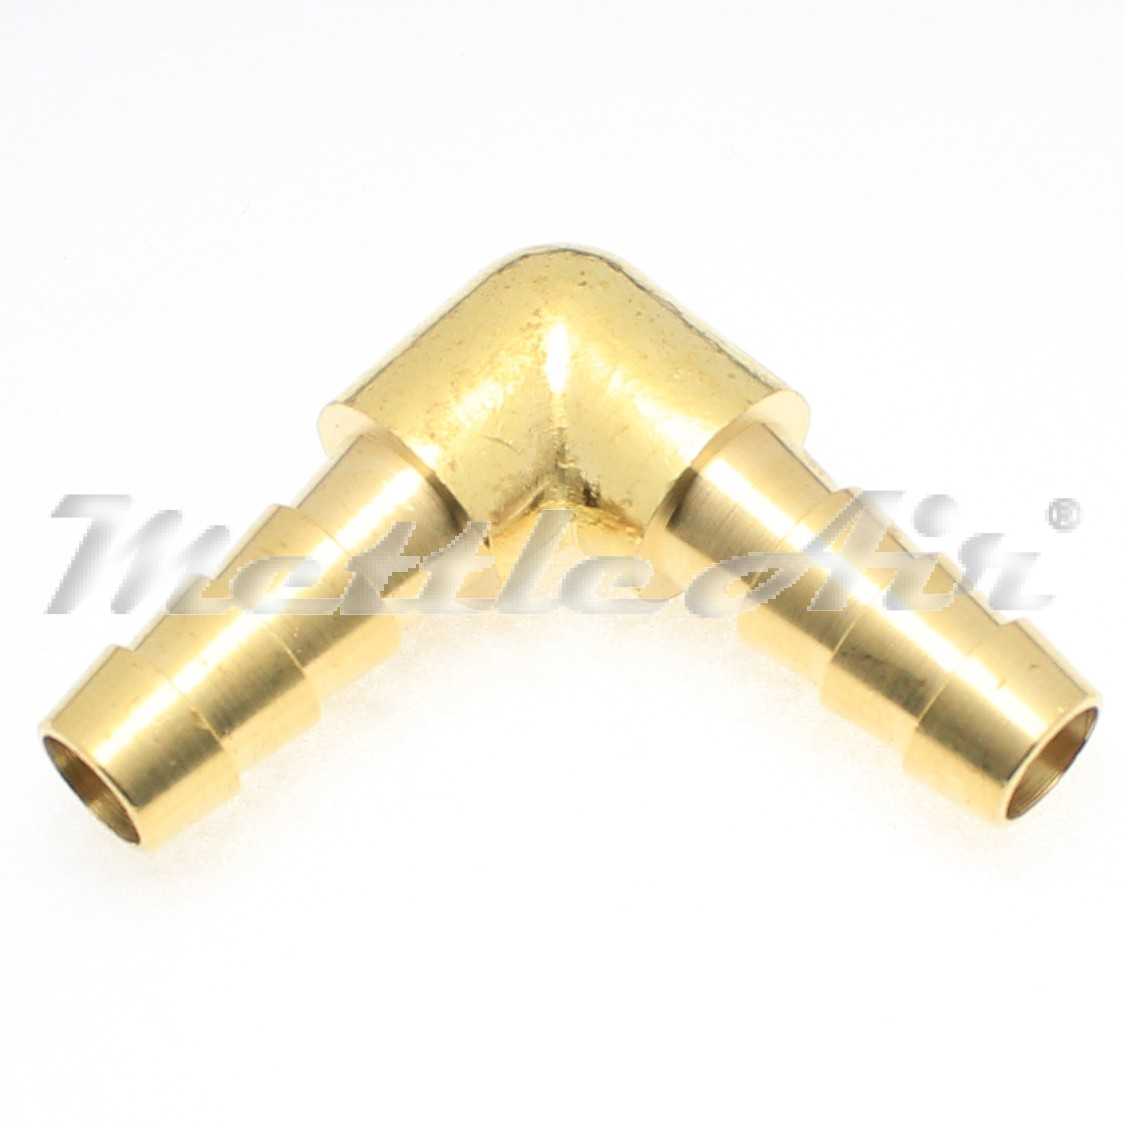 Brass elbow union quot hose id barb